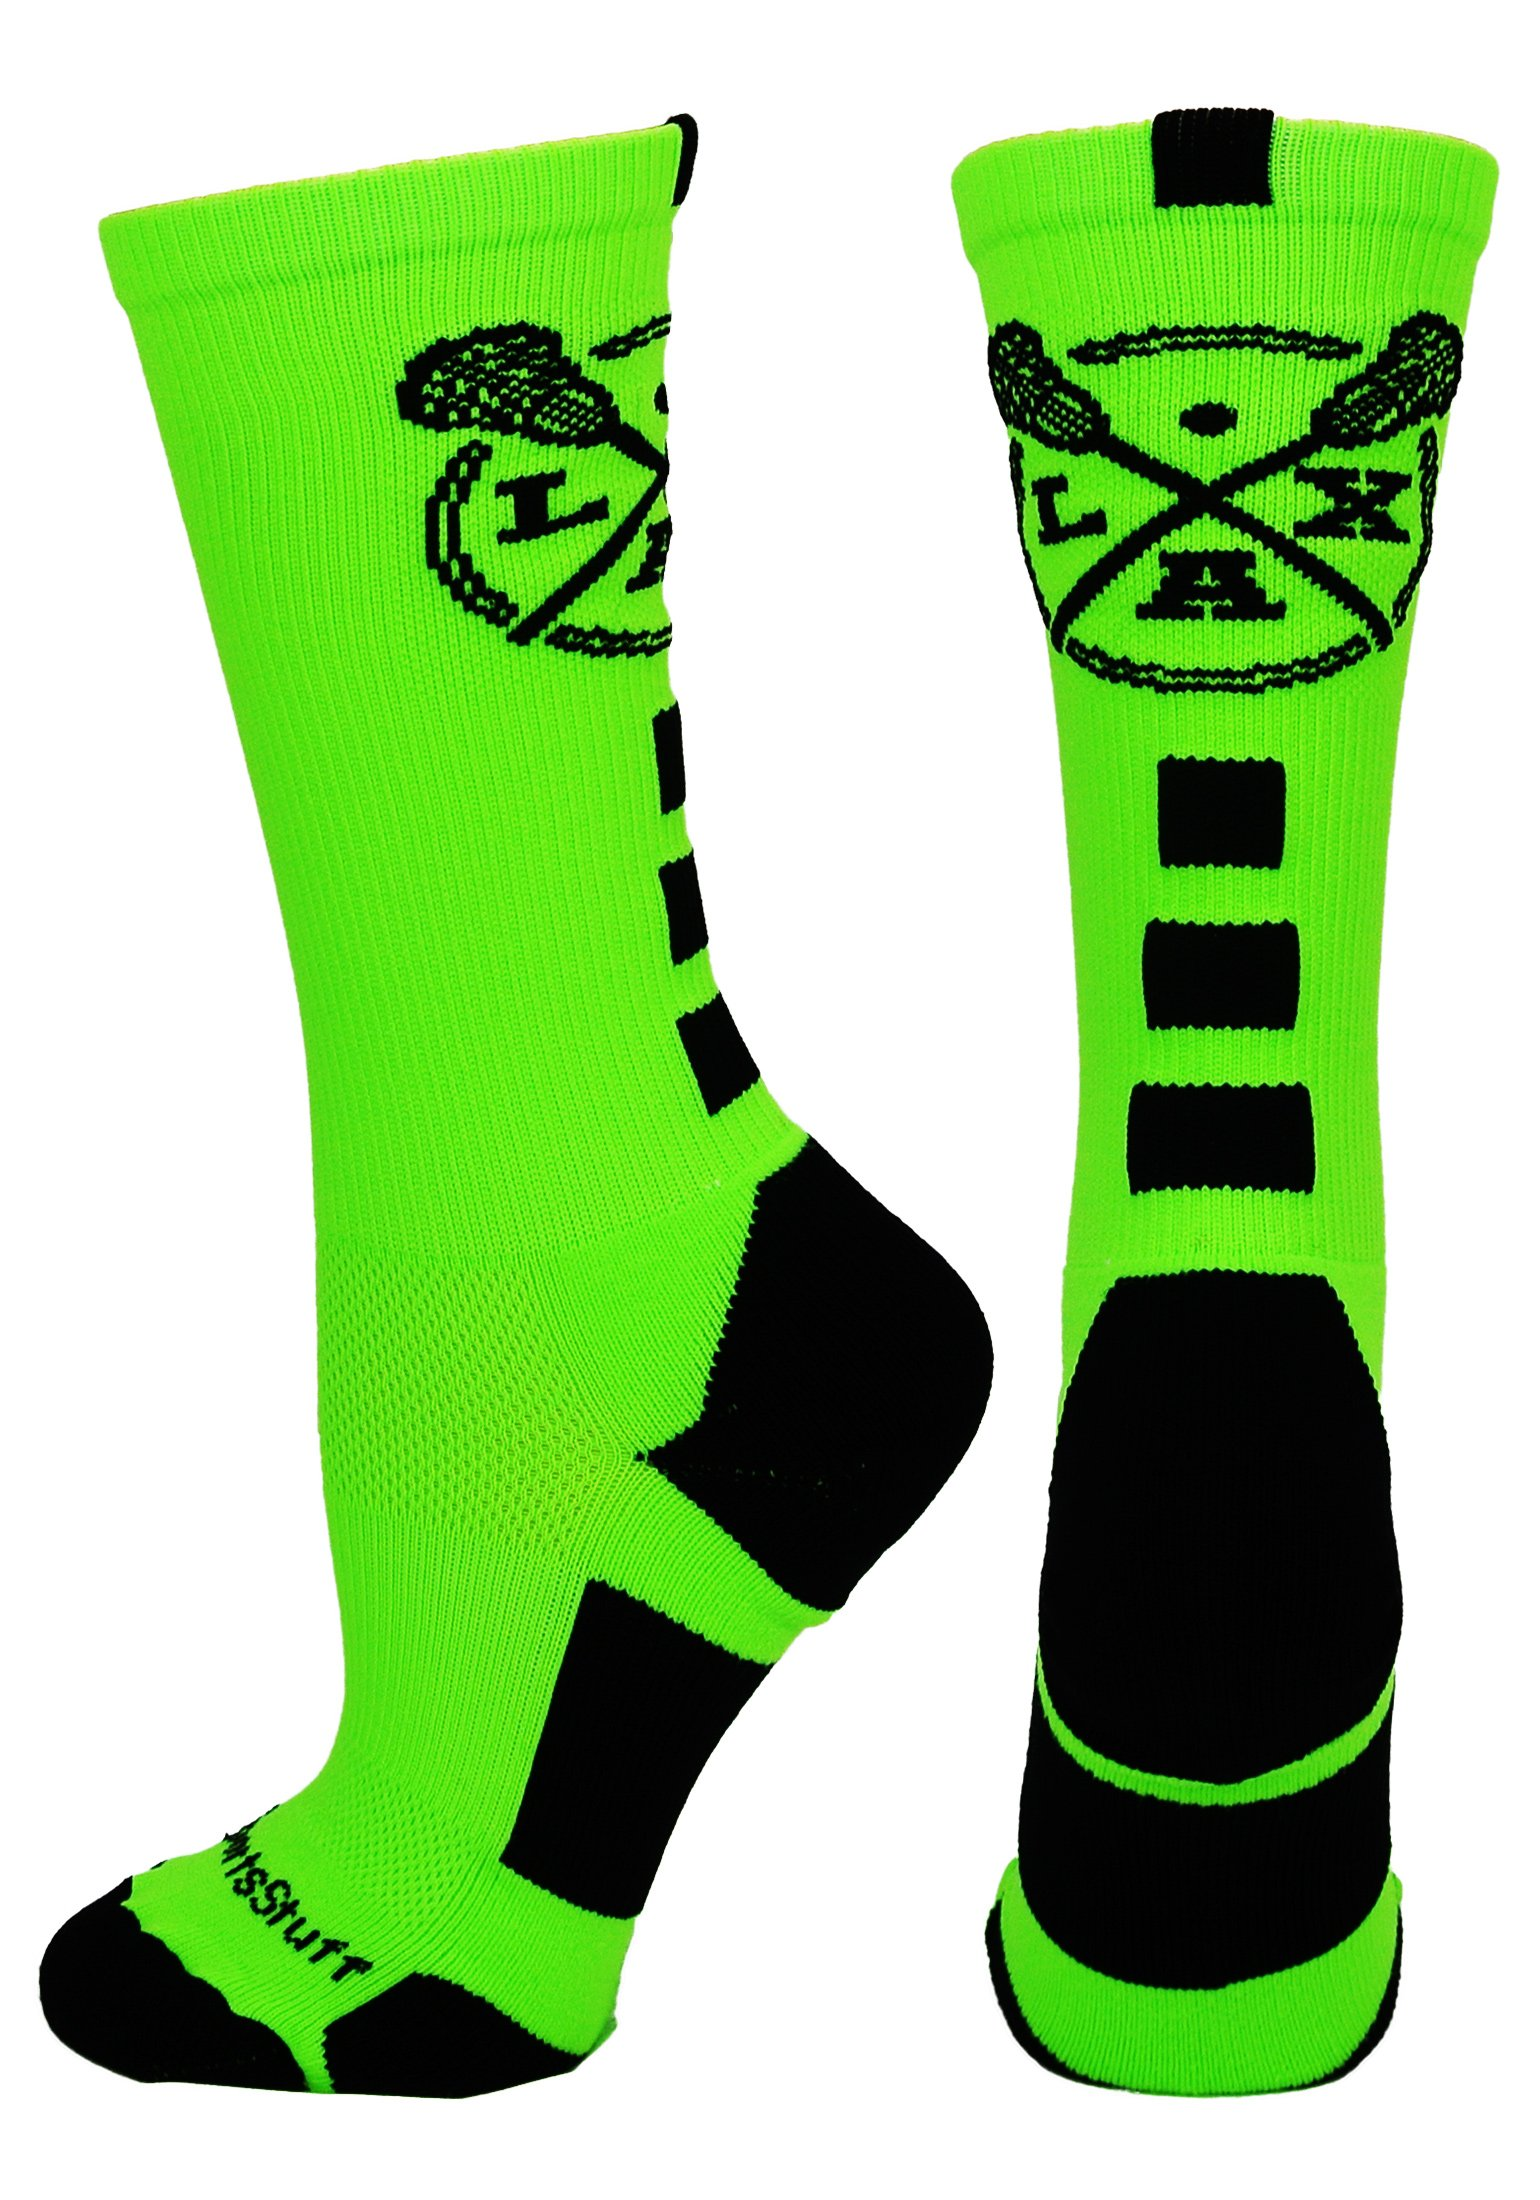 MadSportsStuff LAX Lacrosse Socks with Lacrosse Sticks Athletic Crew Socks (Neon Green/Black, Small) by MadSportsStuff